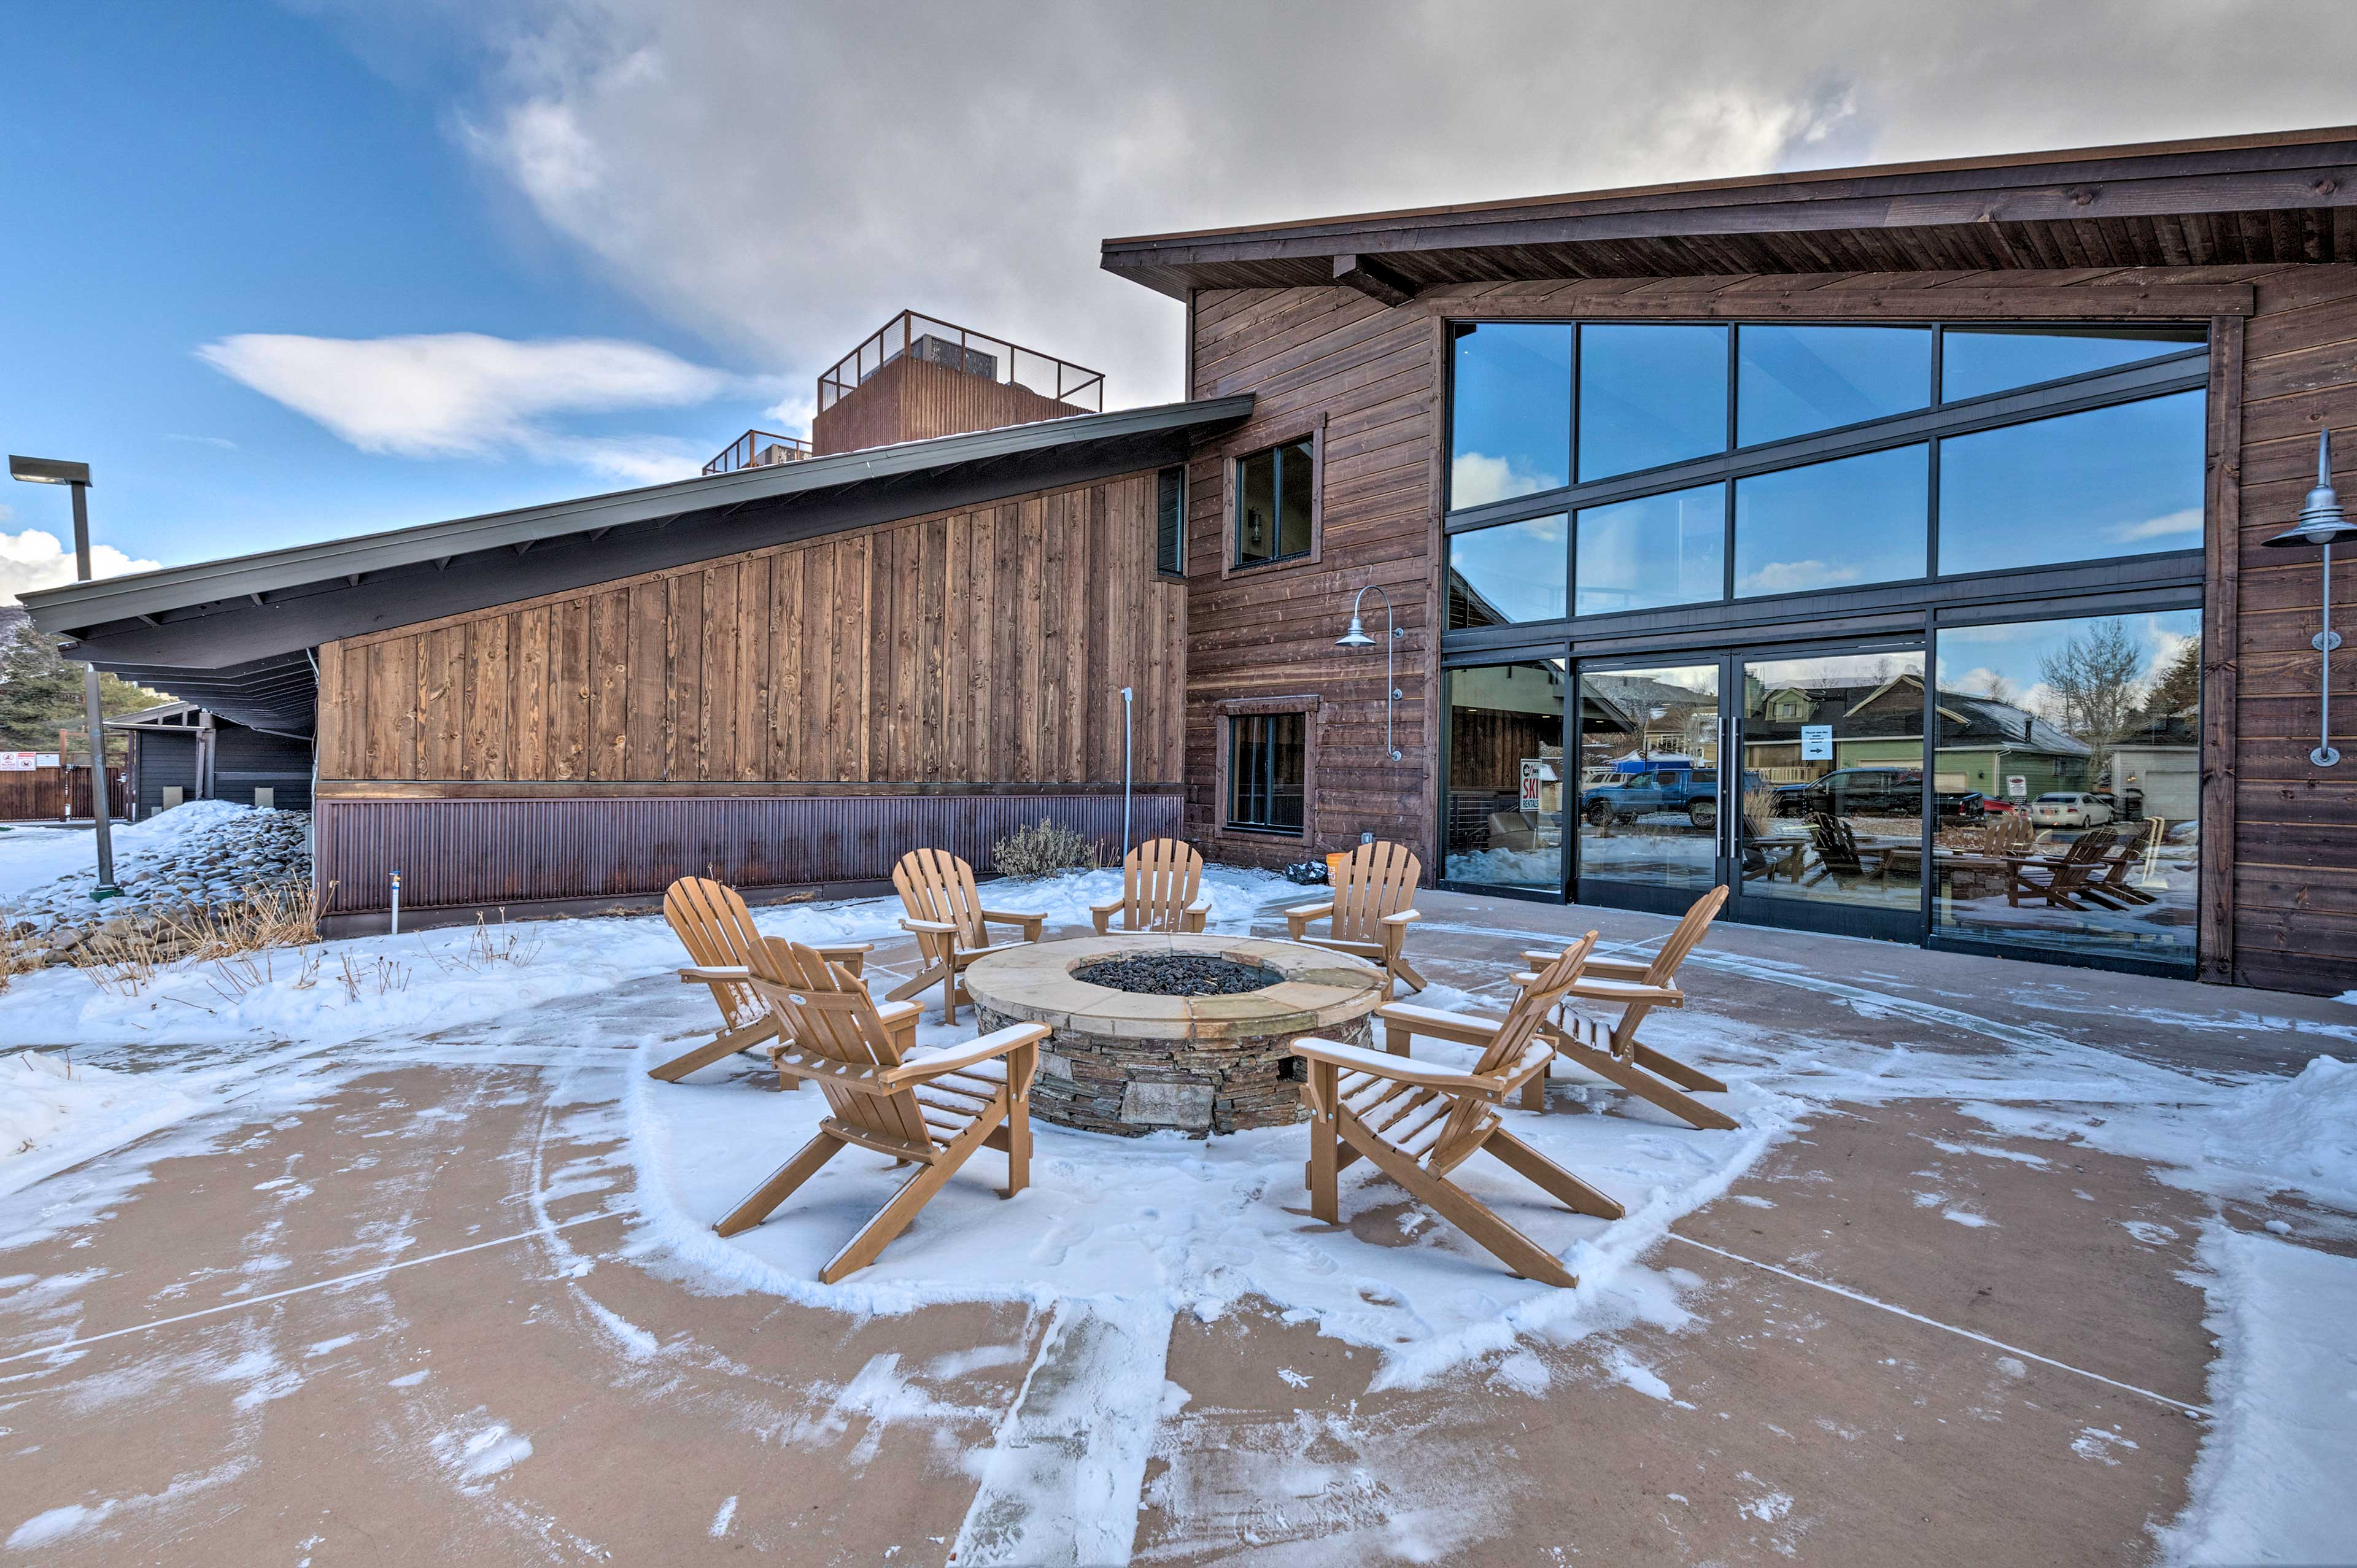 Sip brews and enjoy time spent around the community fire pit.